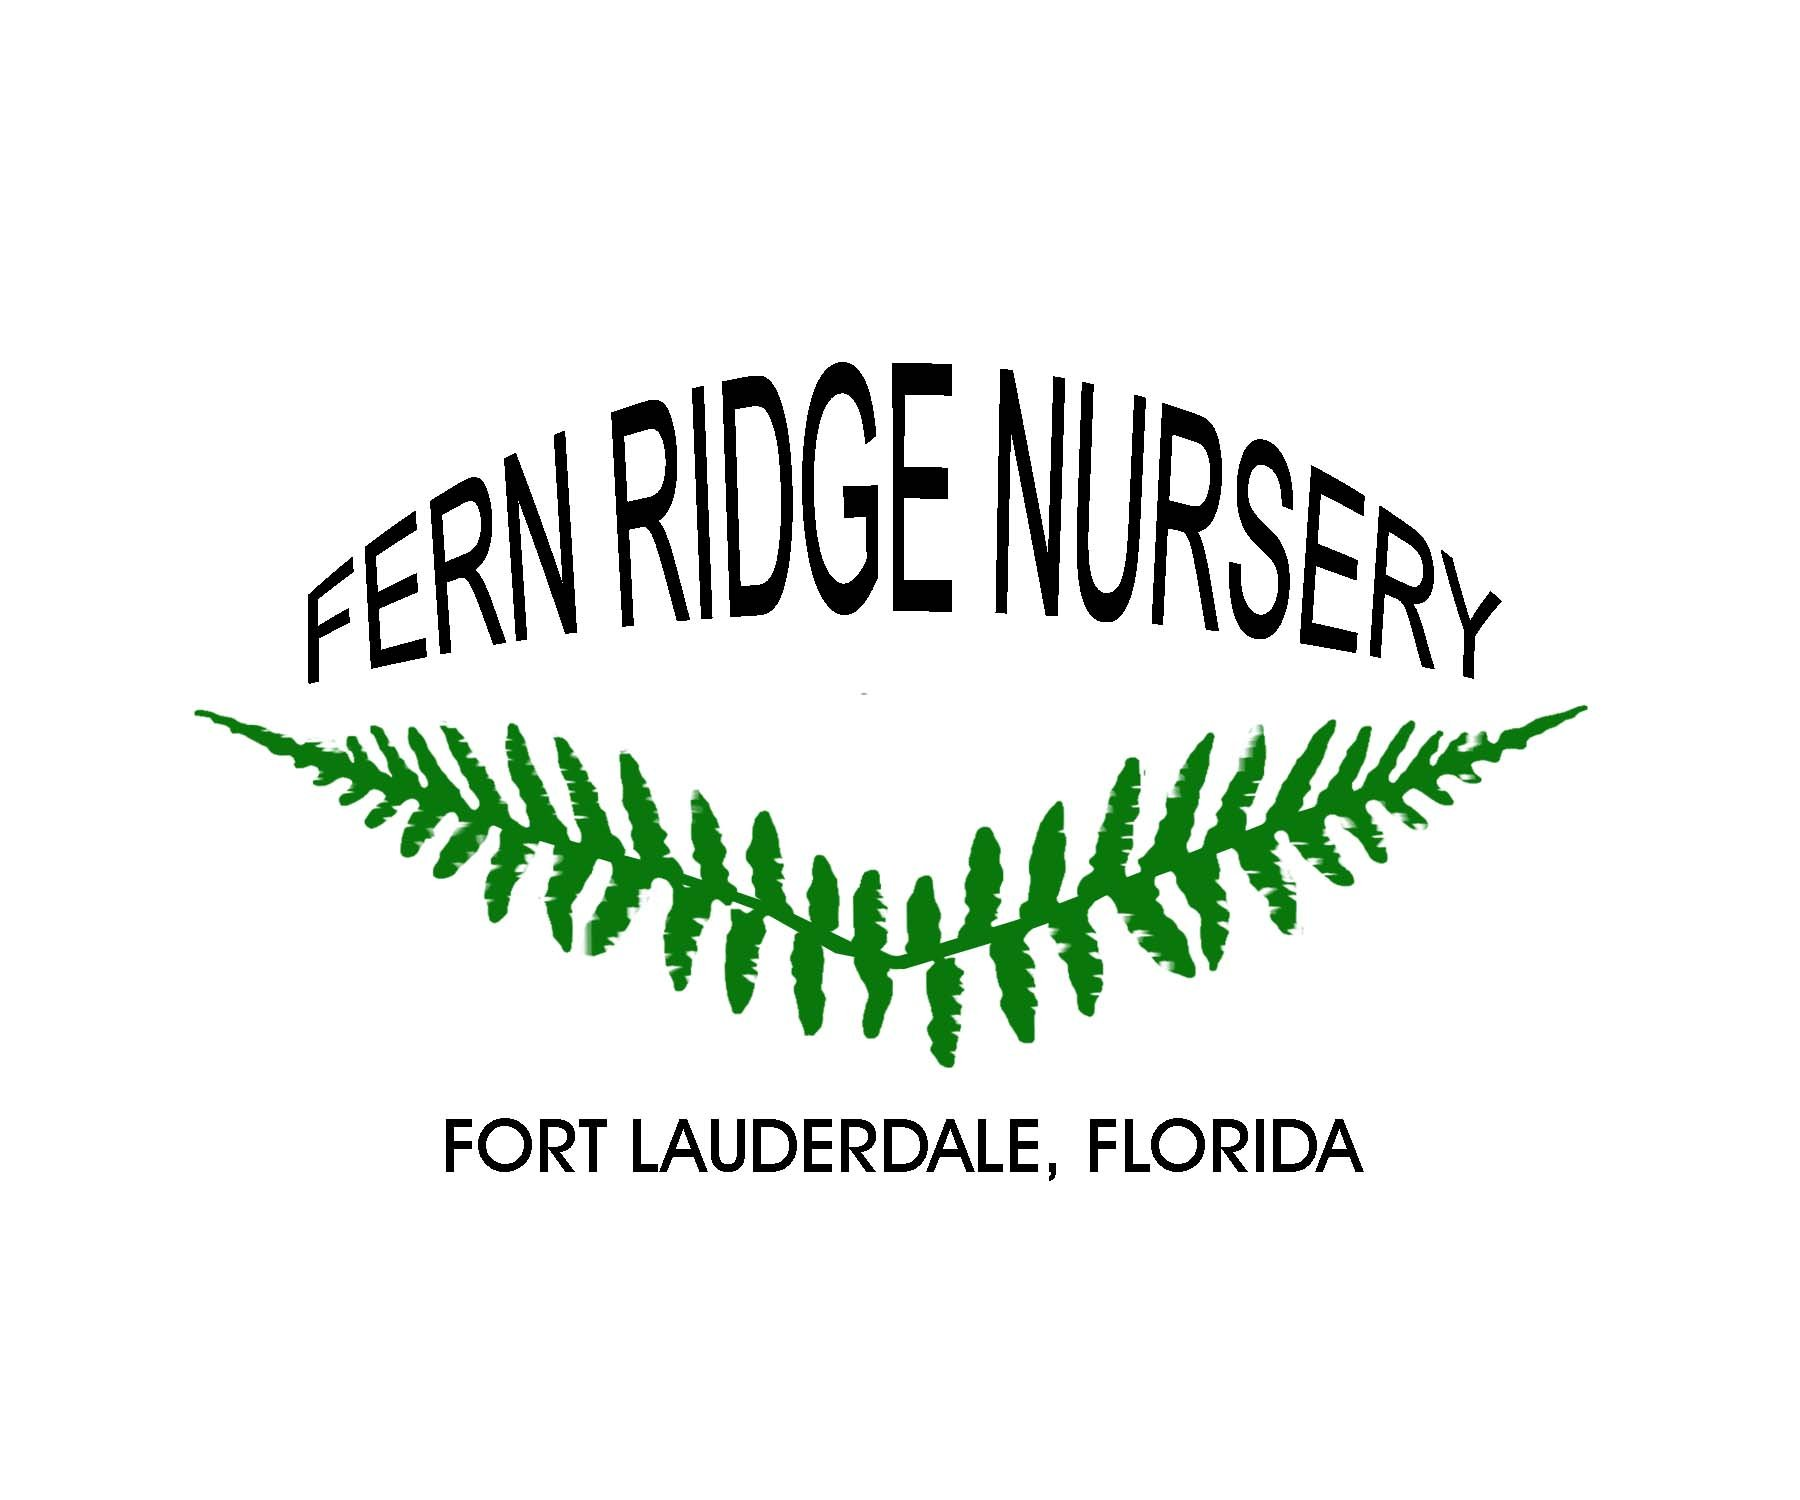 Fern Ridge Nursery